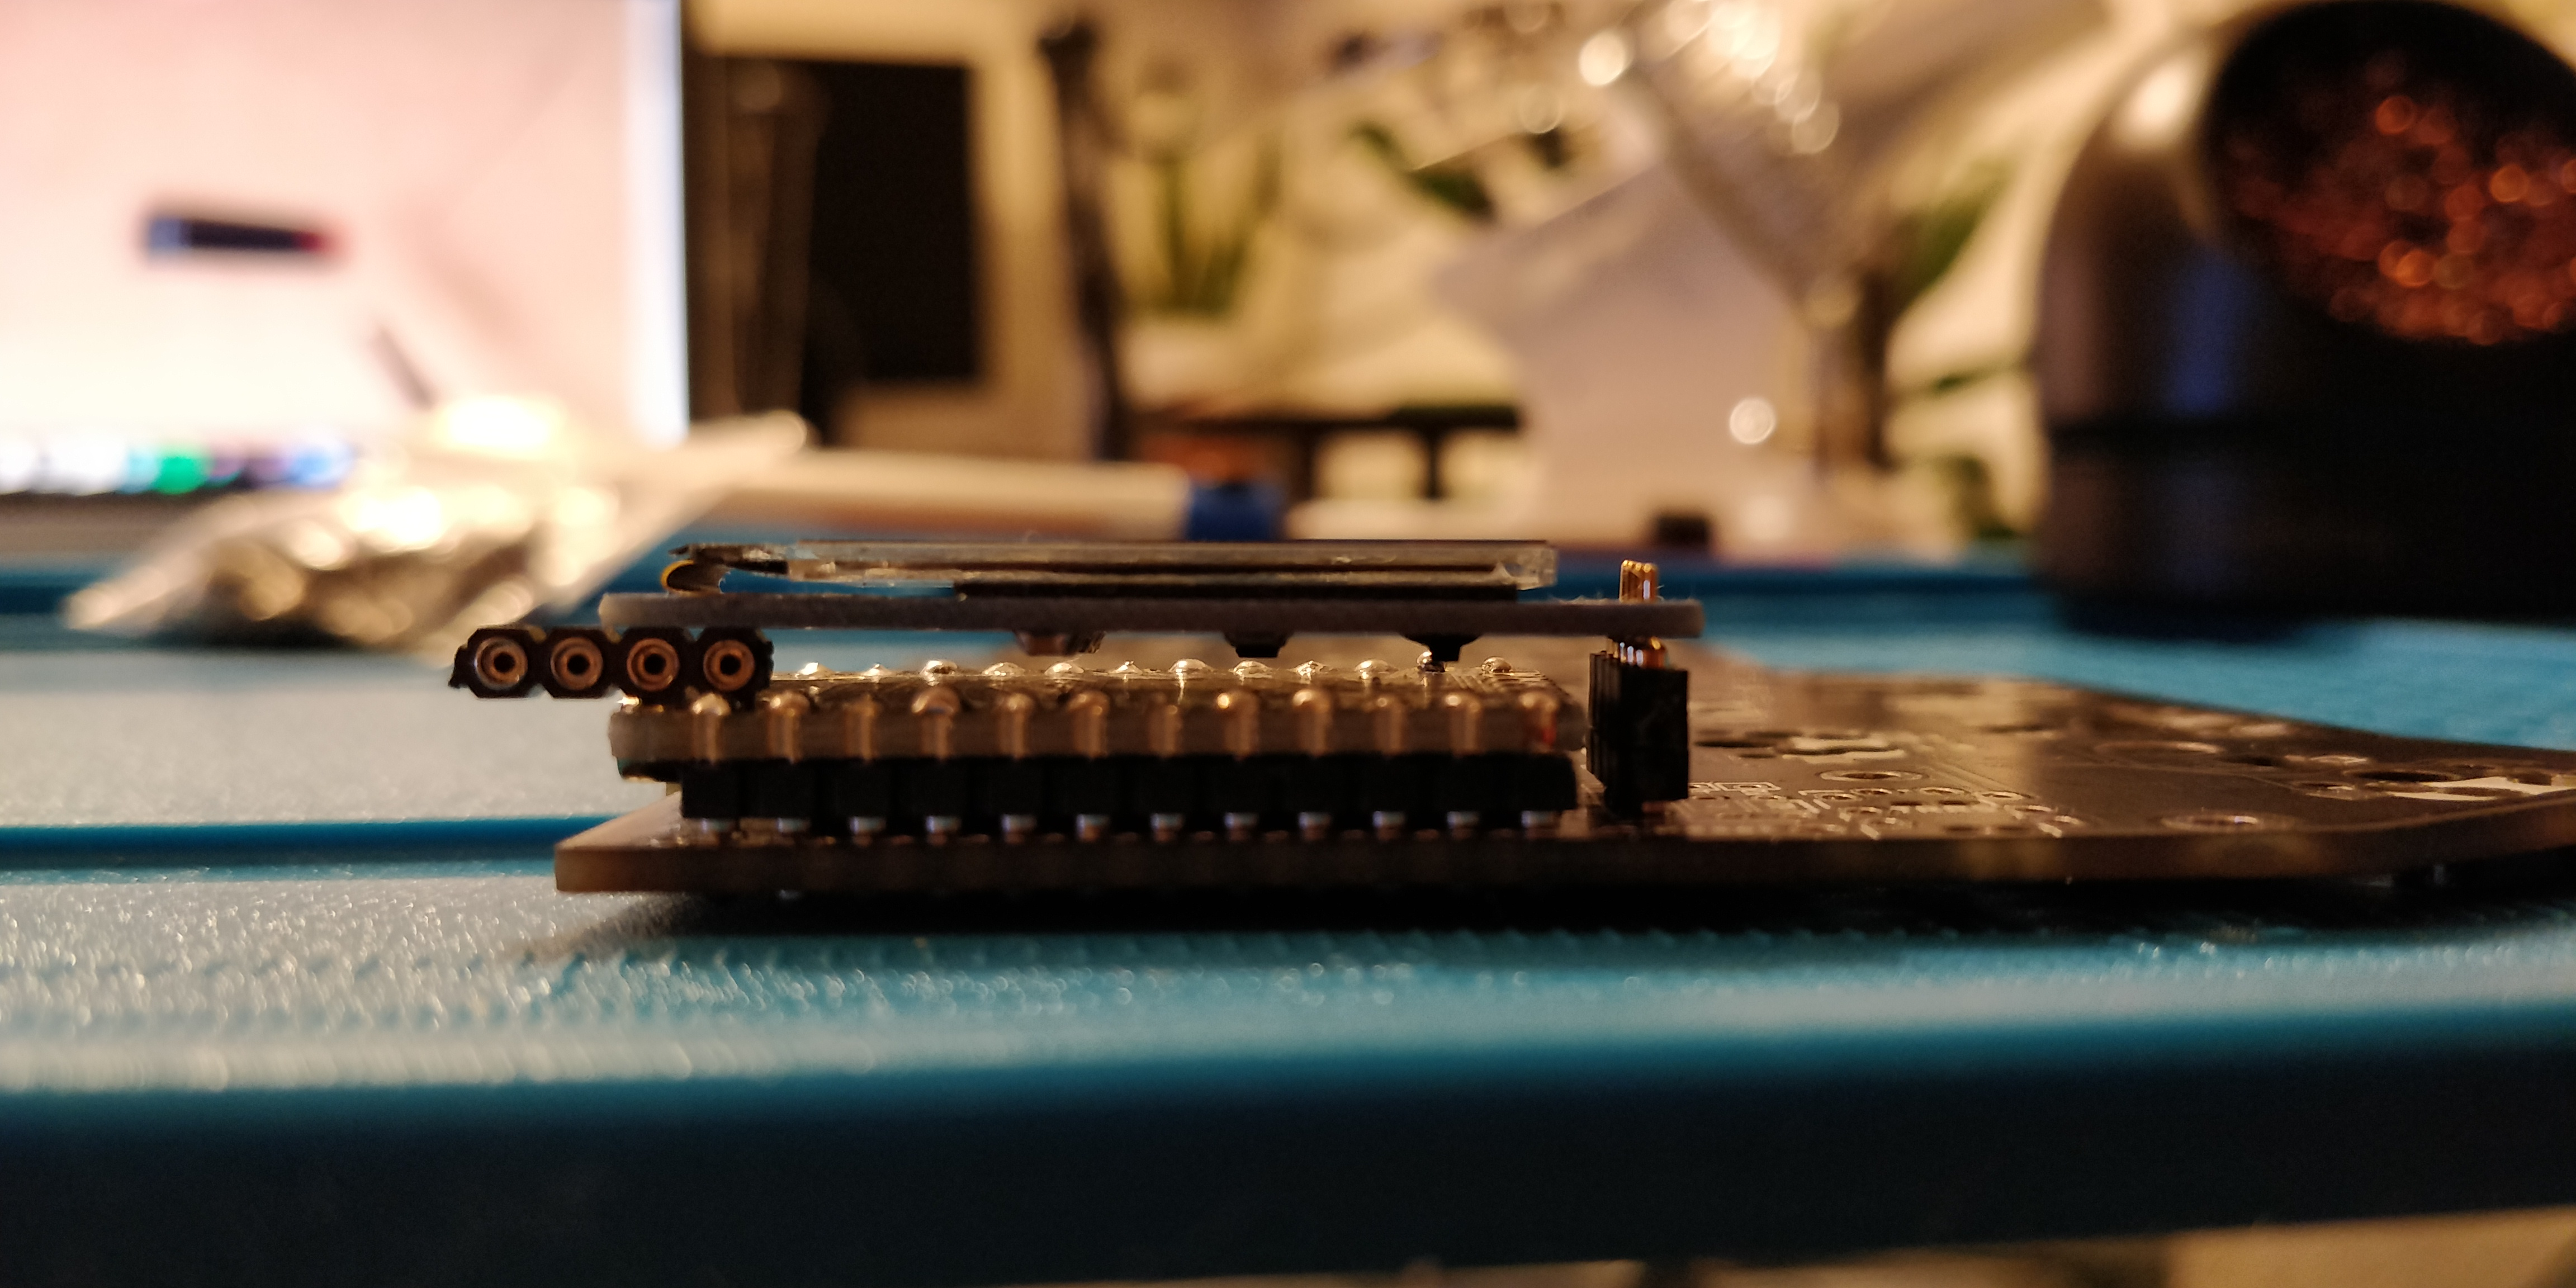 step 17.2 - corne crkbd - another angle of the OLED space divider